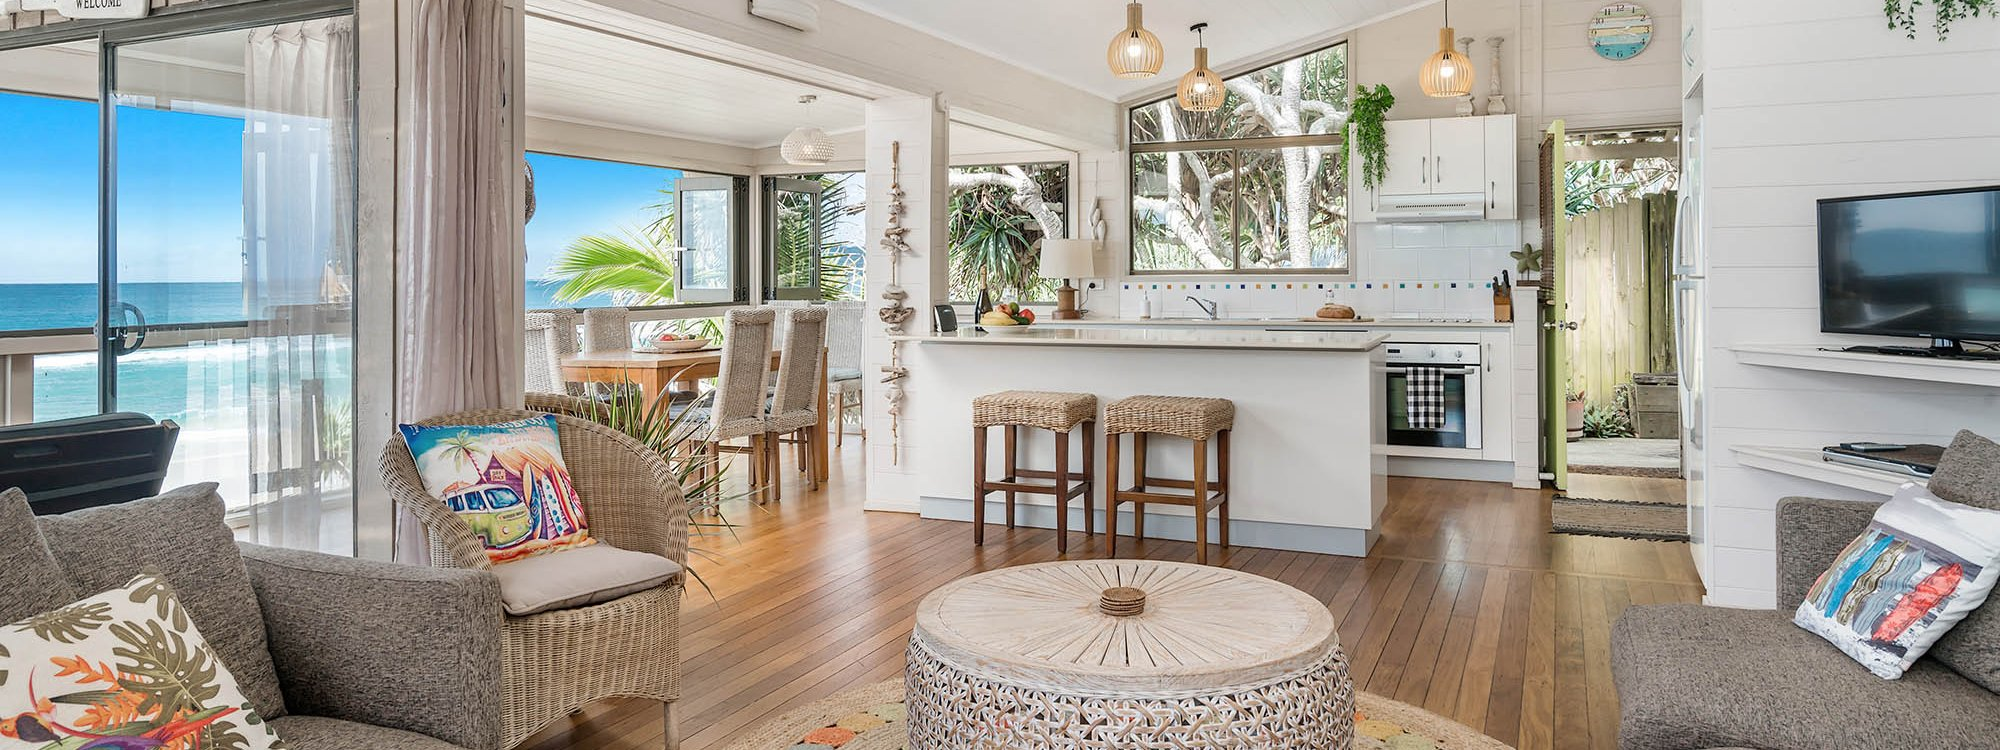 Moonstruck - Byron Bay - Living and Dining